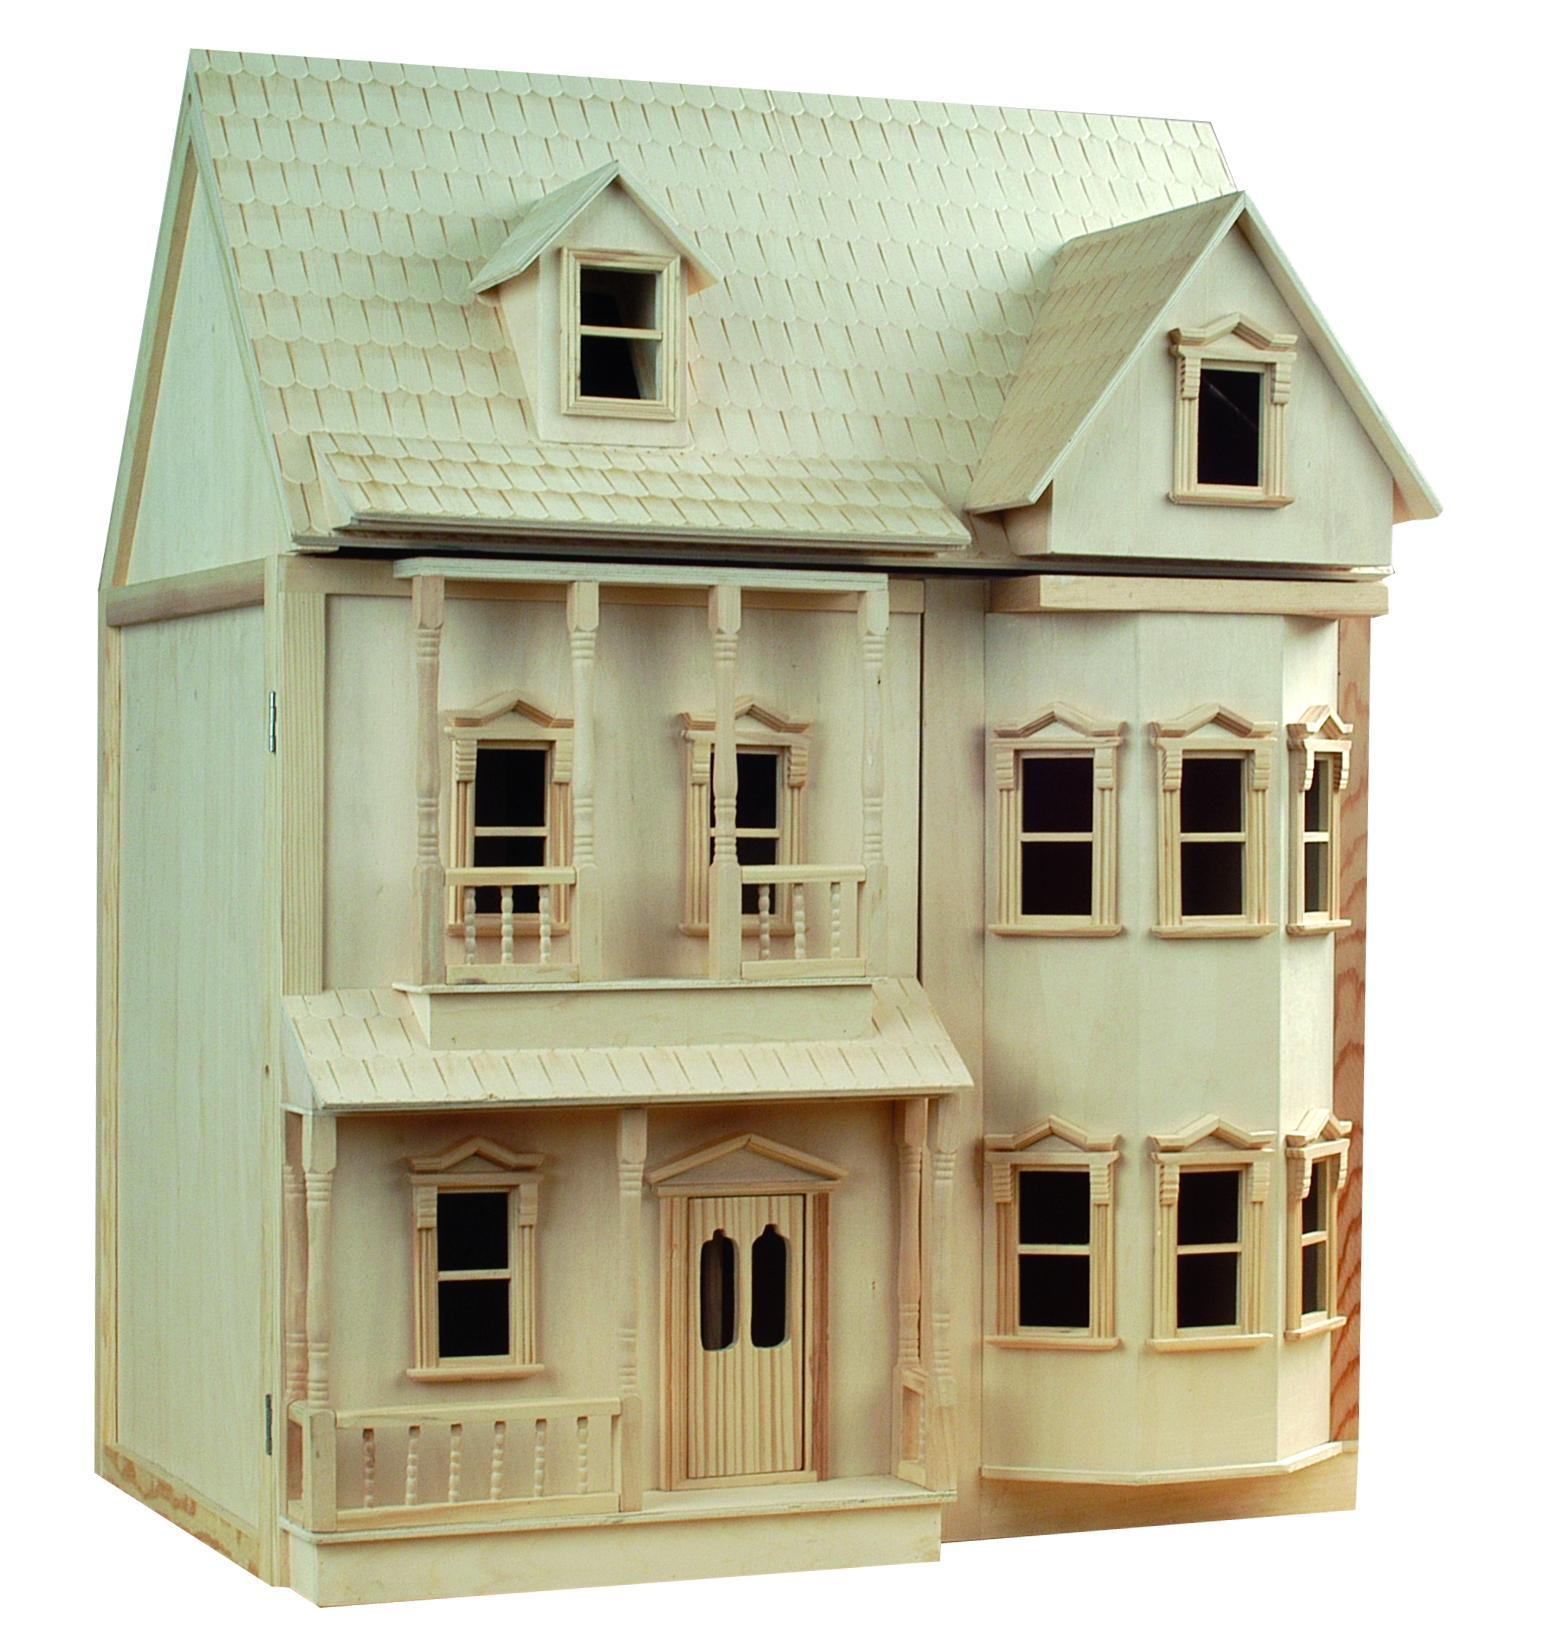 Le wooden toy buy victorian 1 12th scale wooden doll house for Accessory house